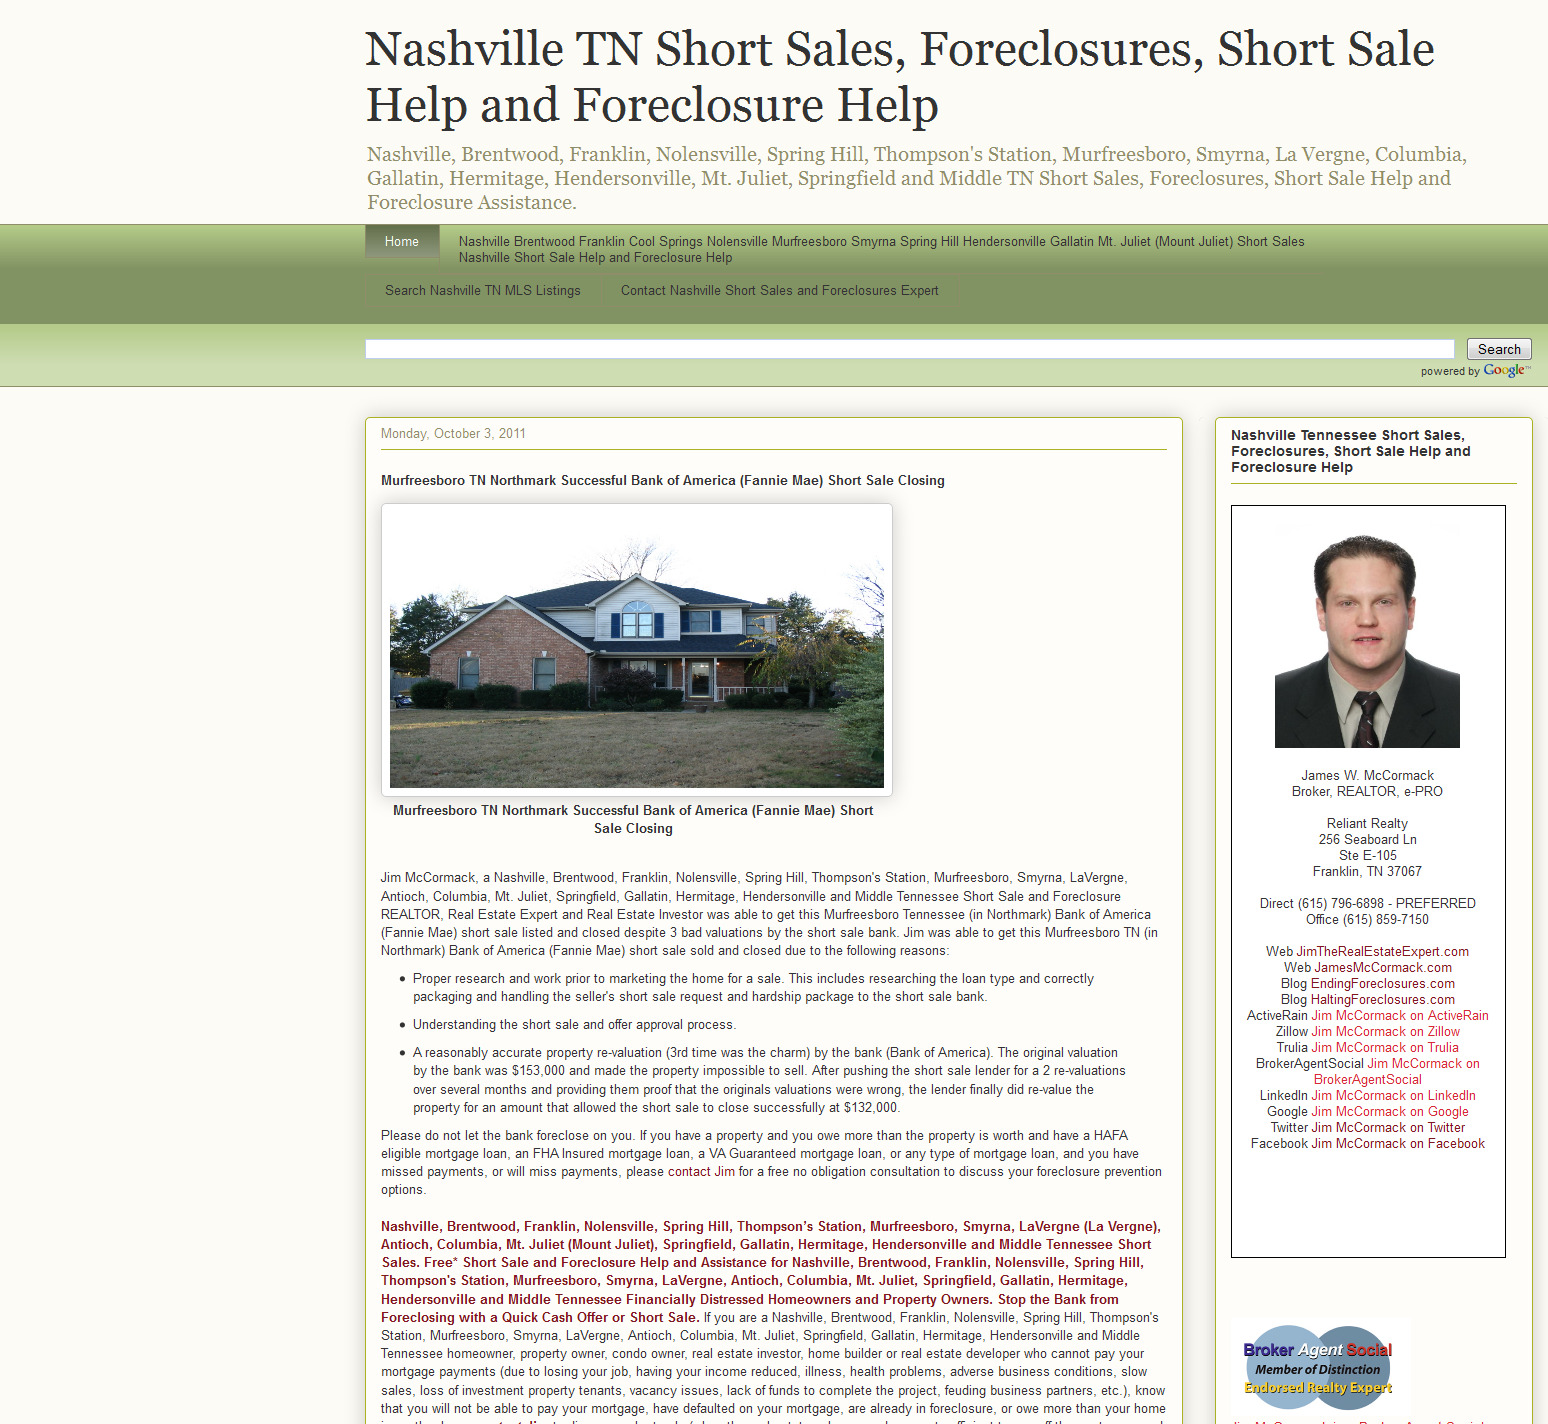 Nashville, Brentwood, Franklin, Nolensville, Spring Hill, Thompson's Station, Murfreesboro, Smyrna, LaVergne (La Vergne), Antioch, Columbia, Mt. Juliet (Mount Juliet), Springfield, Gallatin, Hermitage, Hendersonville and Middle Tennessee Short Sales, Foreclosures, Short Sale Help and Foreclosure Help.